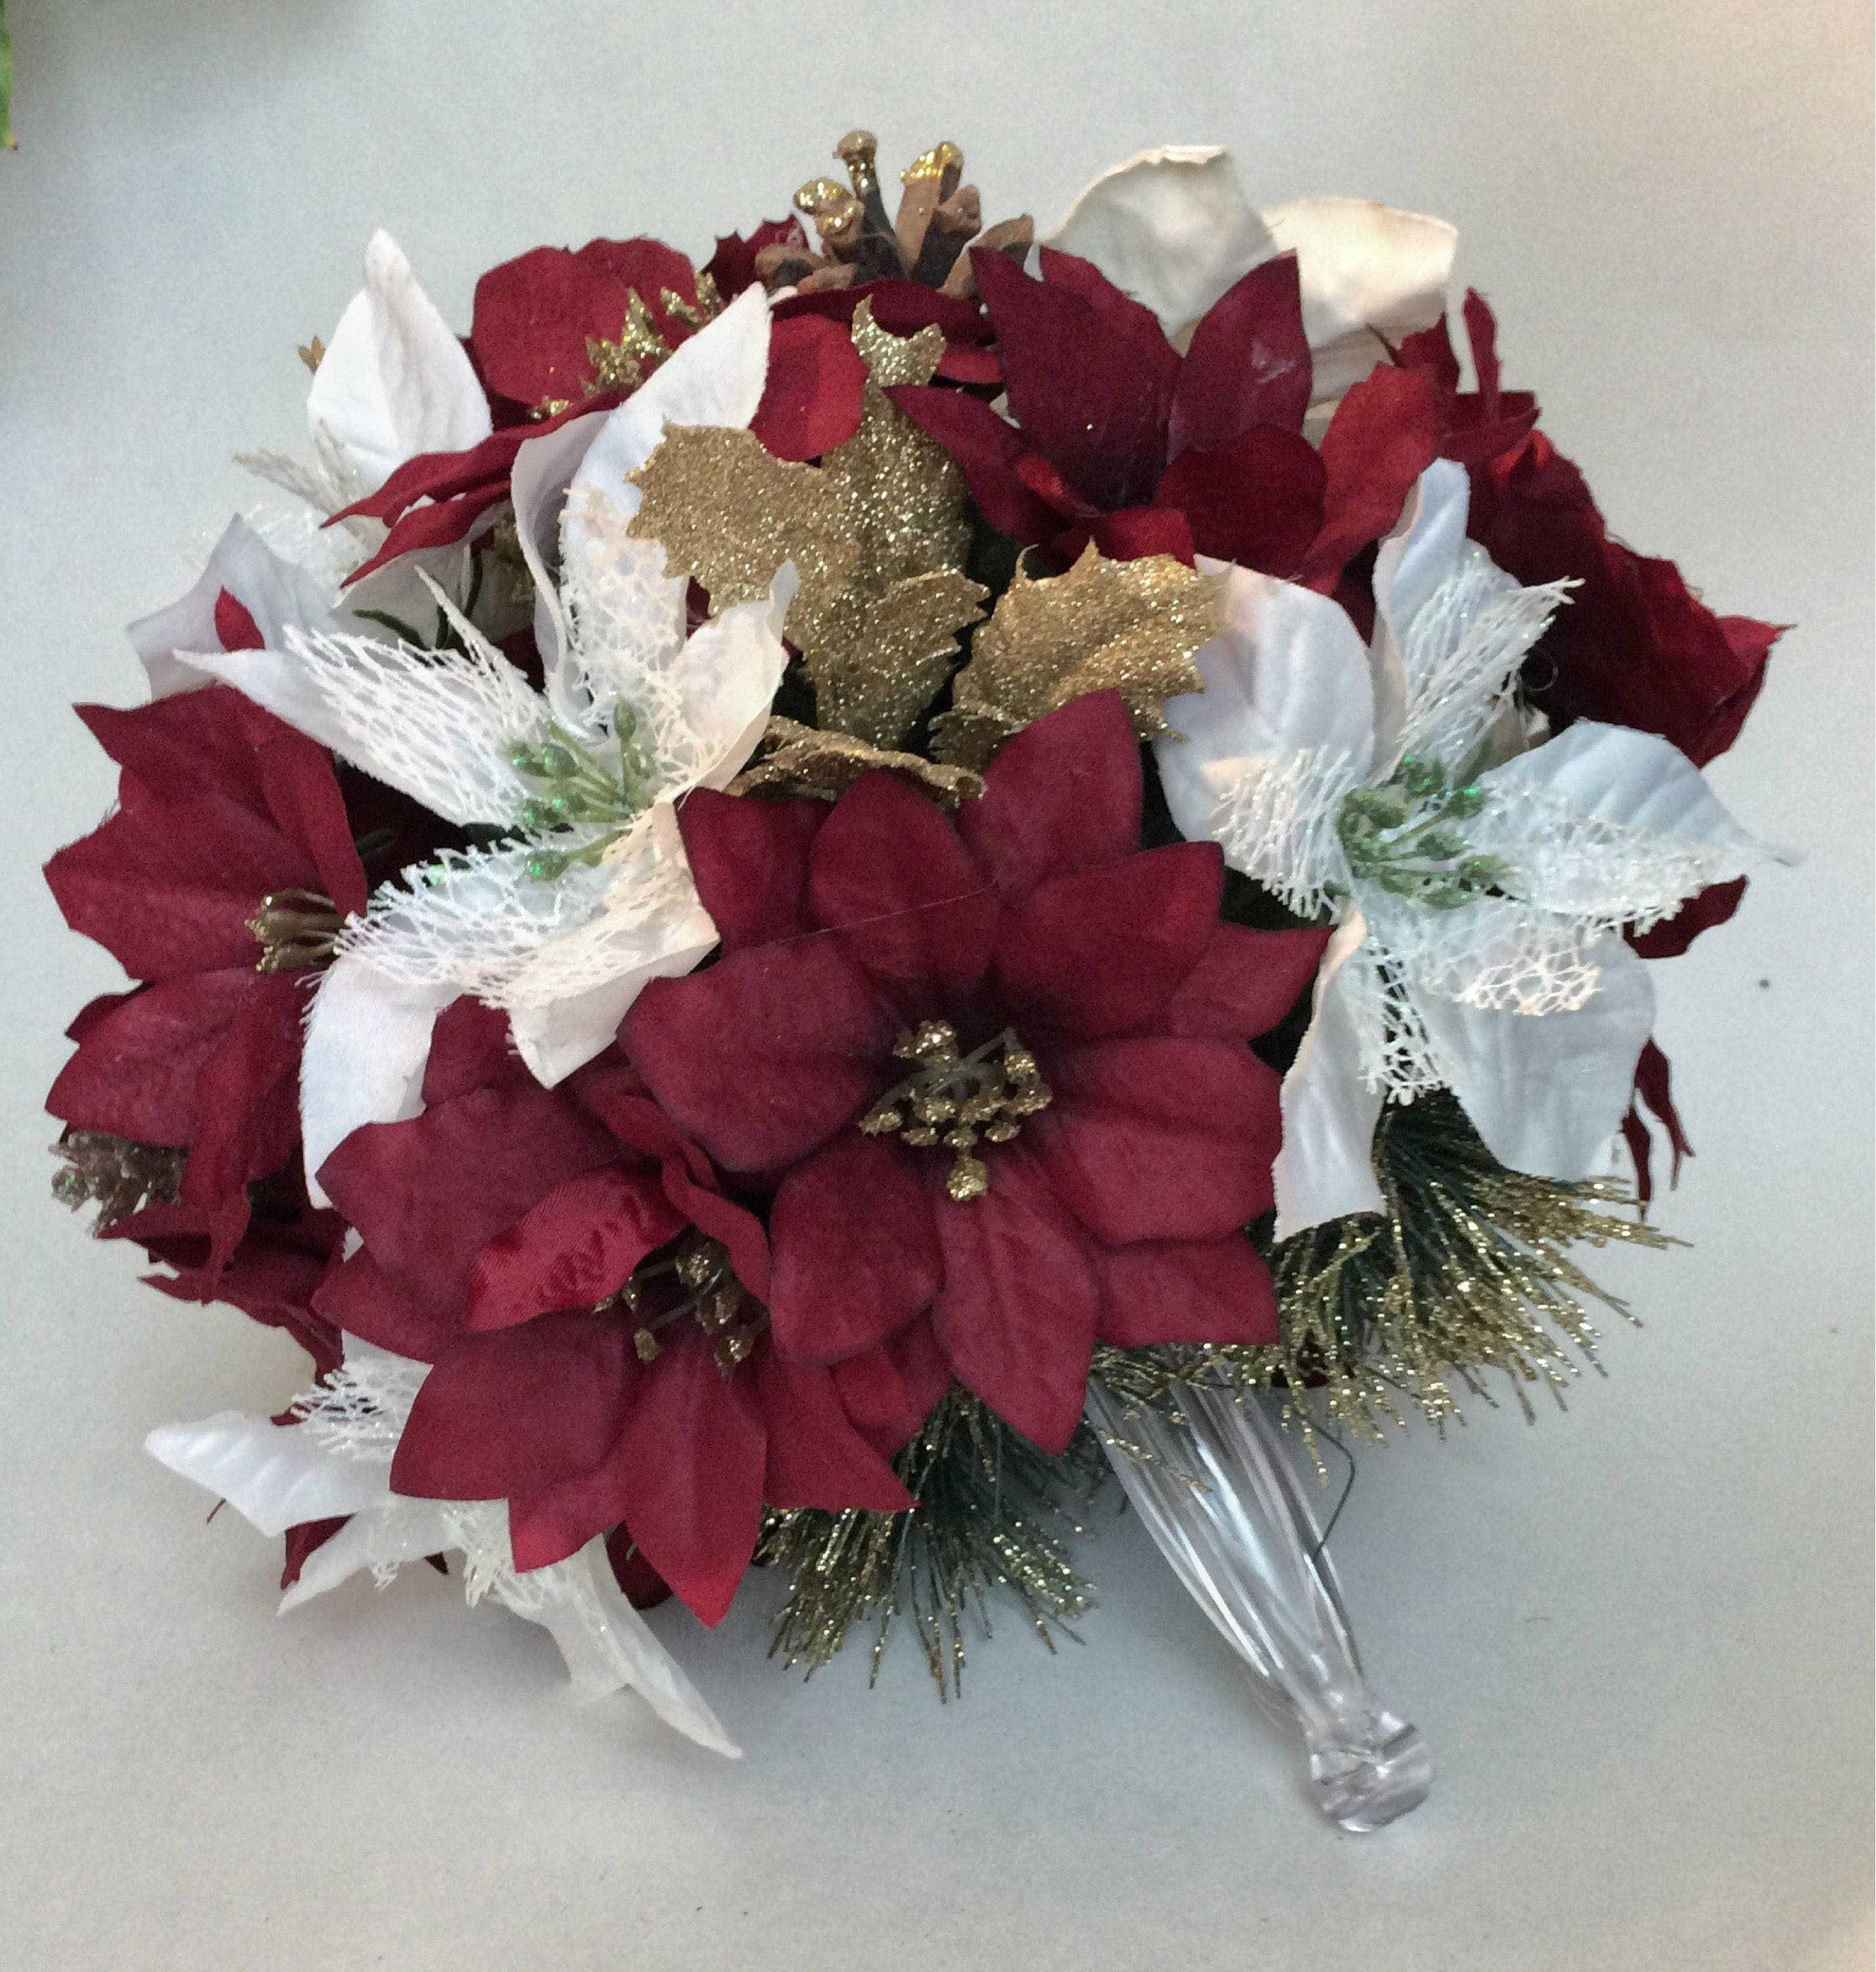 Christmas Wedding Bouquets And Flowers: Christmas Wedding Bouquet Burgundy Poinsettia Bouquet Merlot